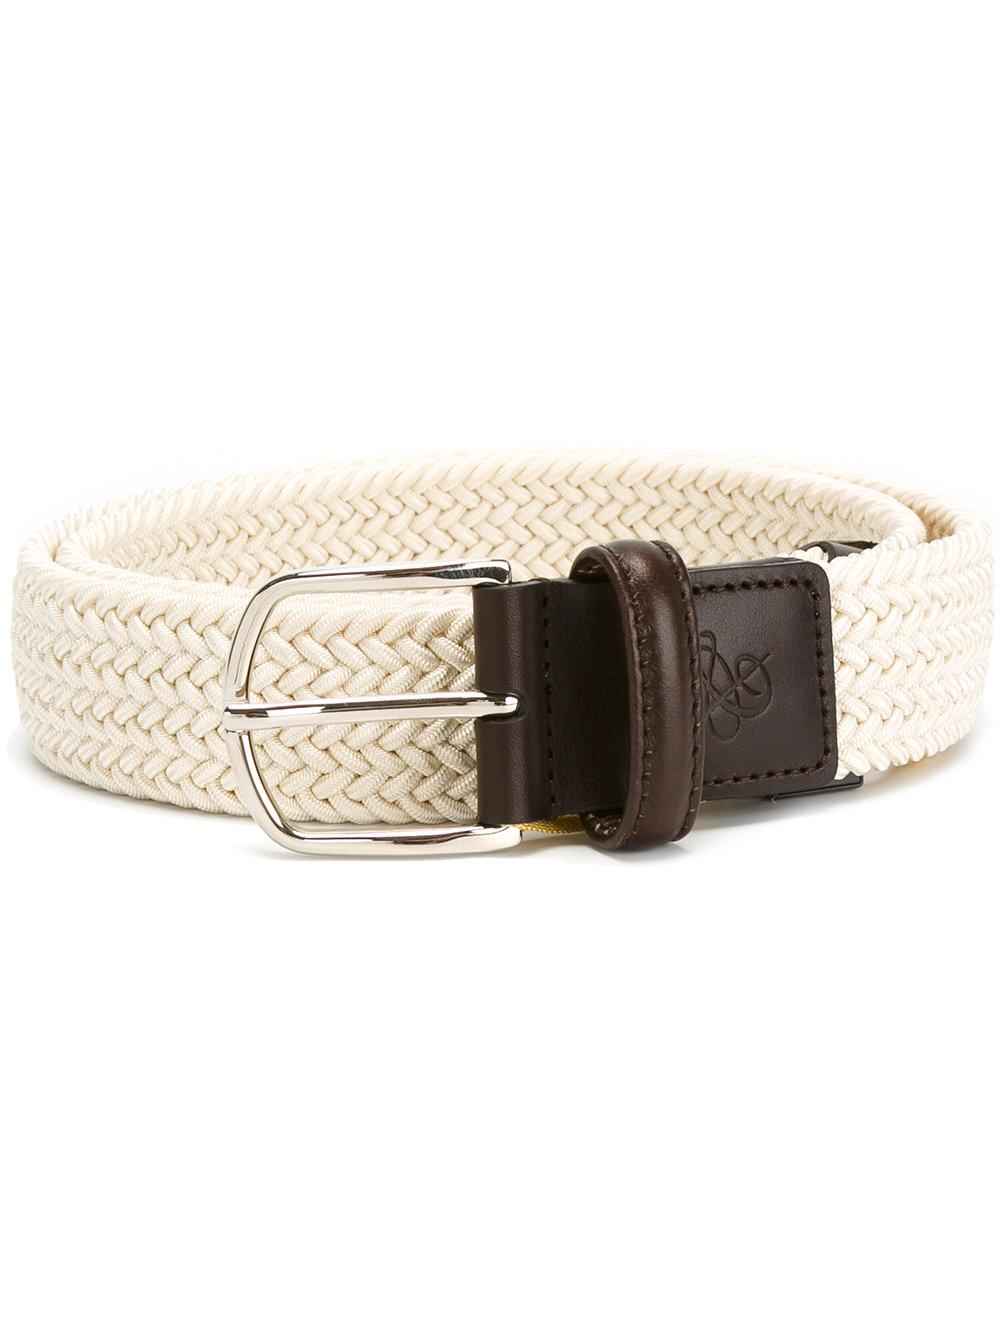 Free shipping BOTH ways on Belts, White, Men, from our vast selection of styles. Fast delivery, and 24/7/ real-person service with a smile. Click or call